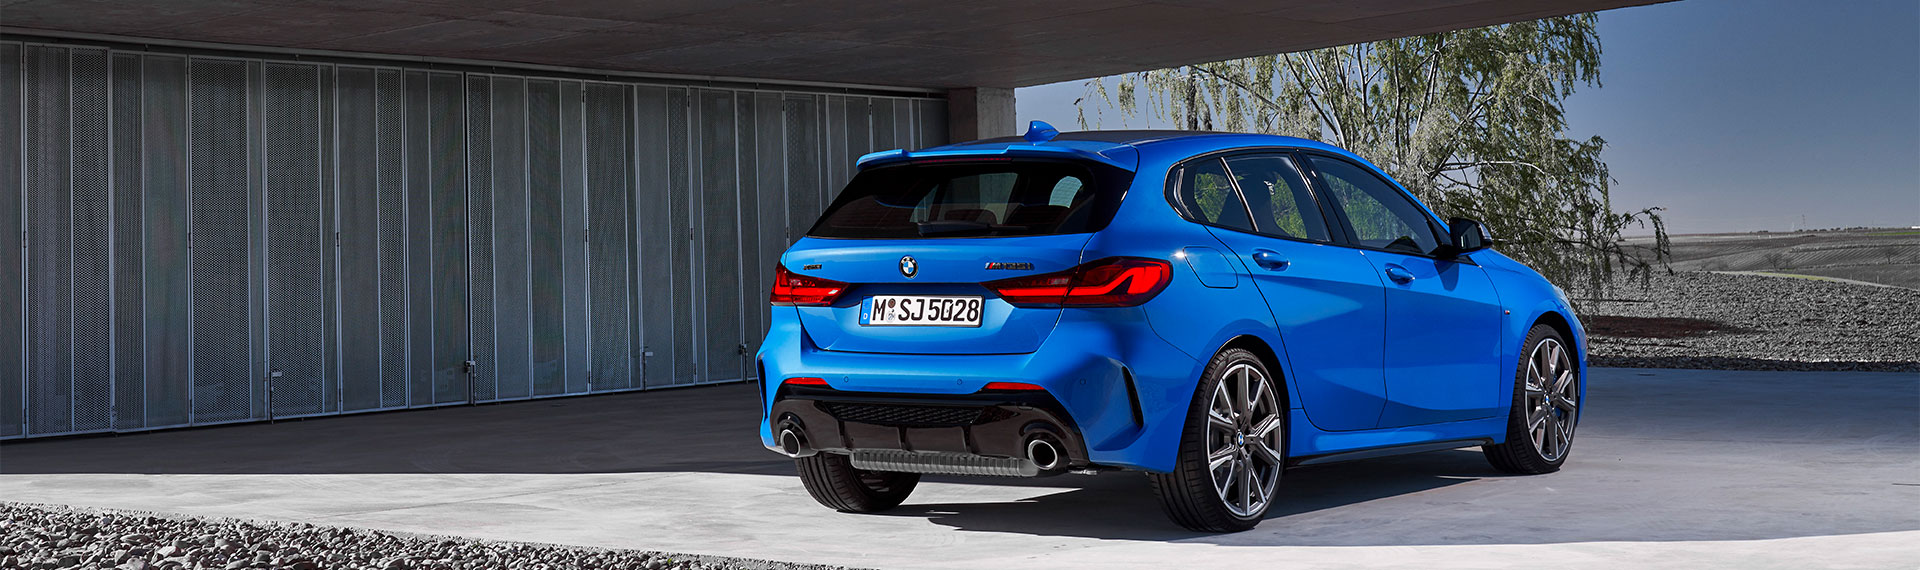 BMW 1 Series rear and side profile.